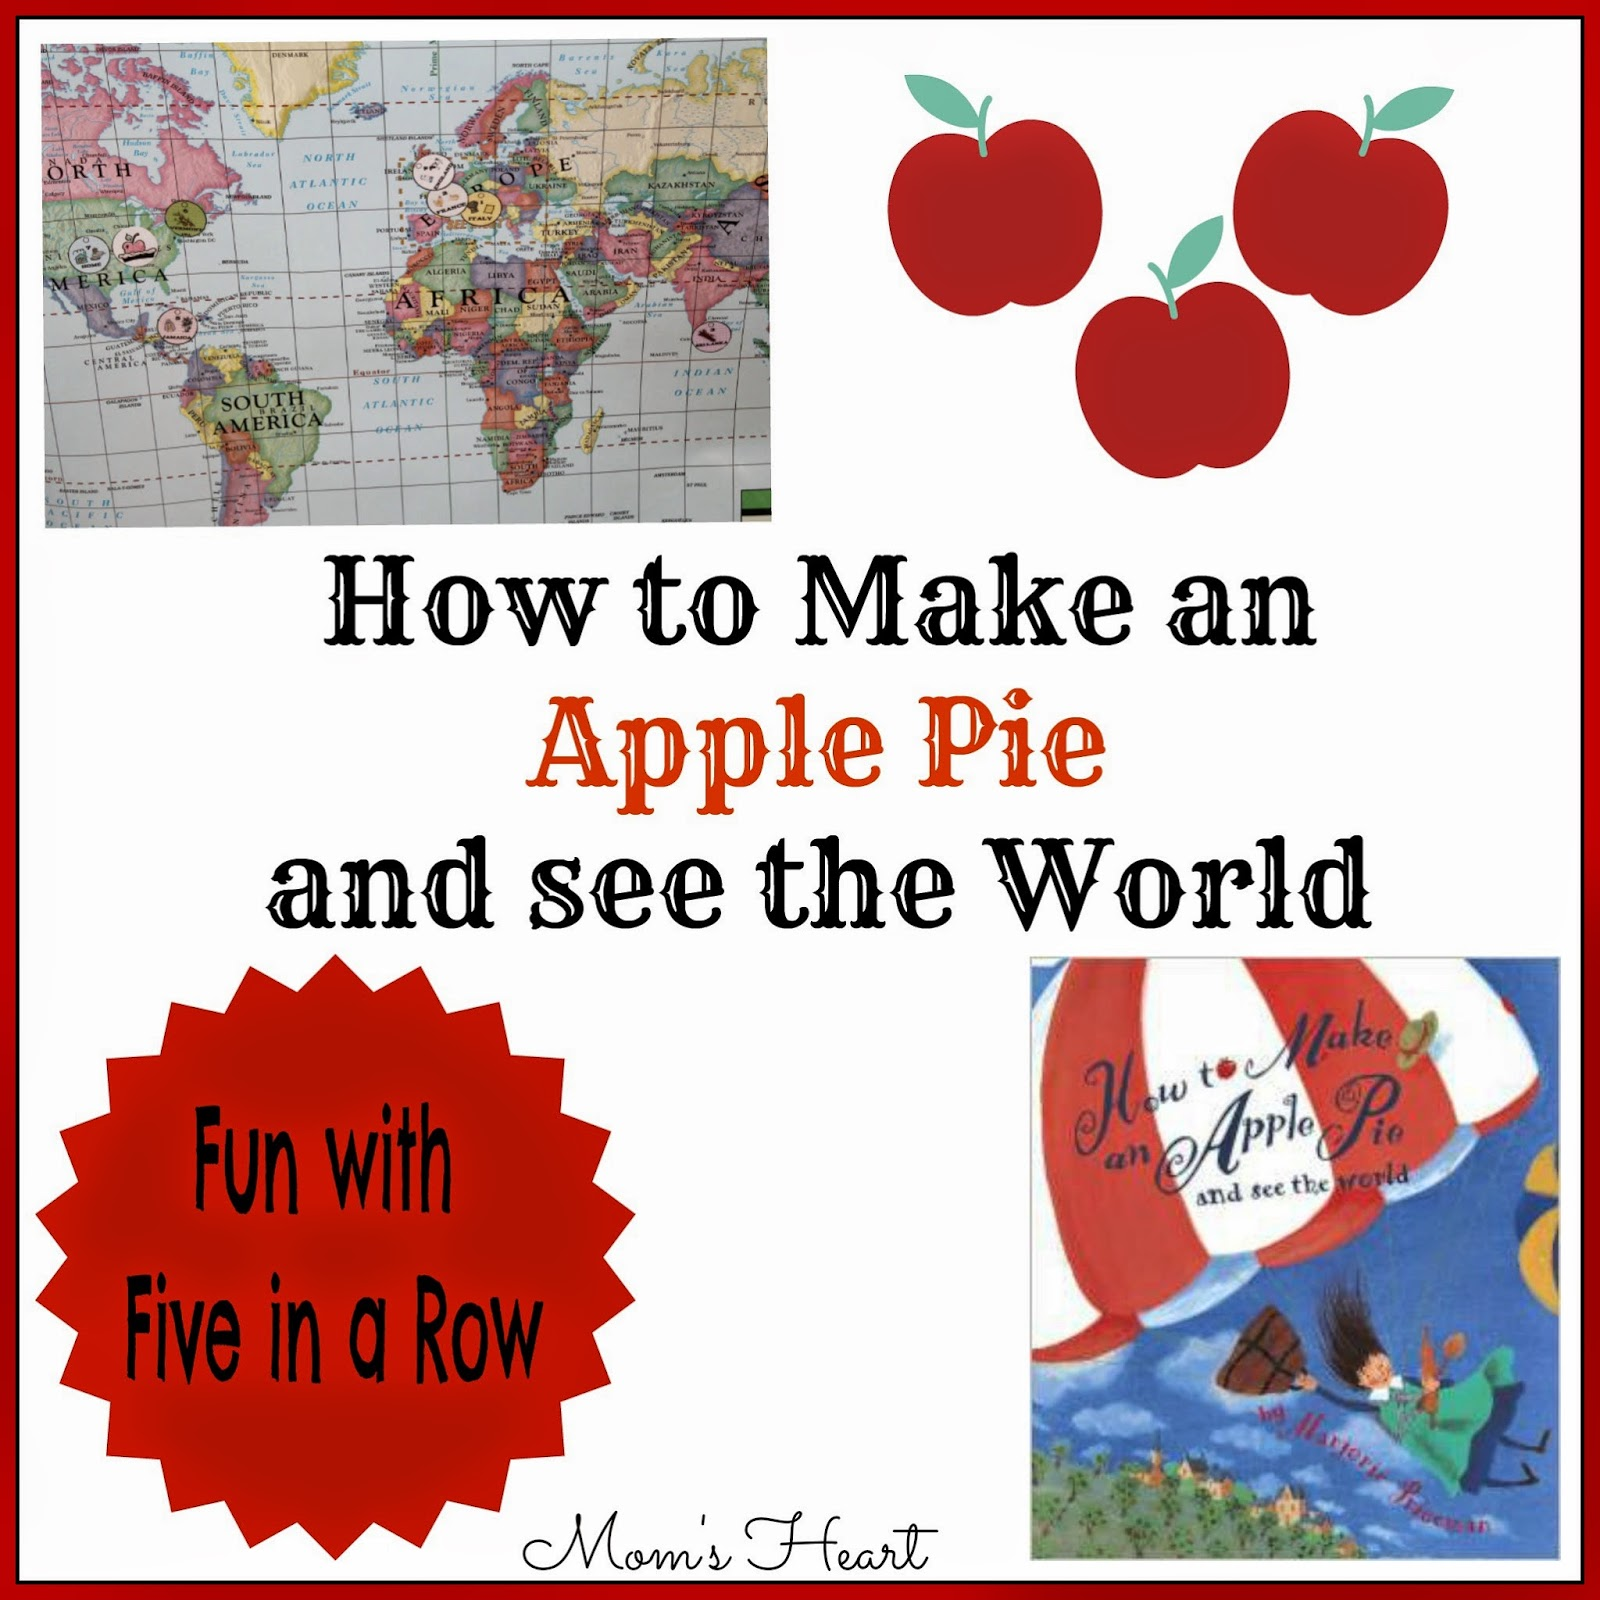 How to Make an Apple Pie and See the World with Five in a Row